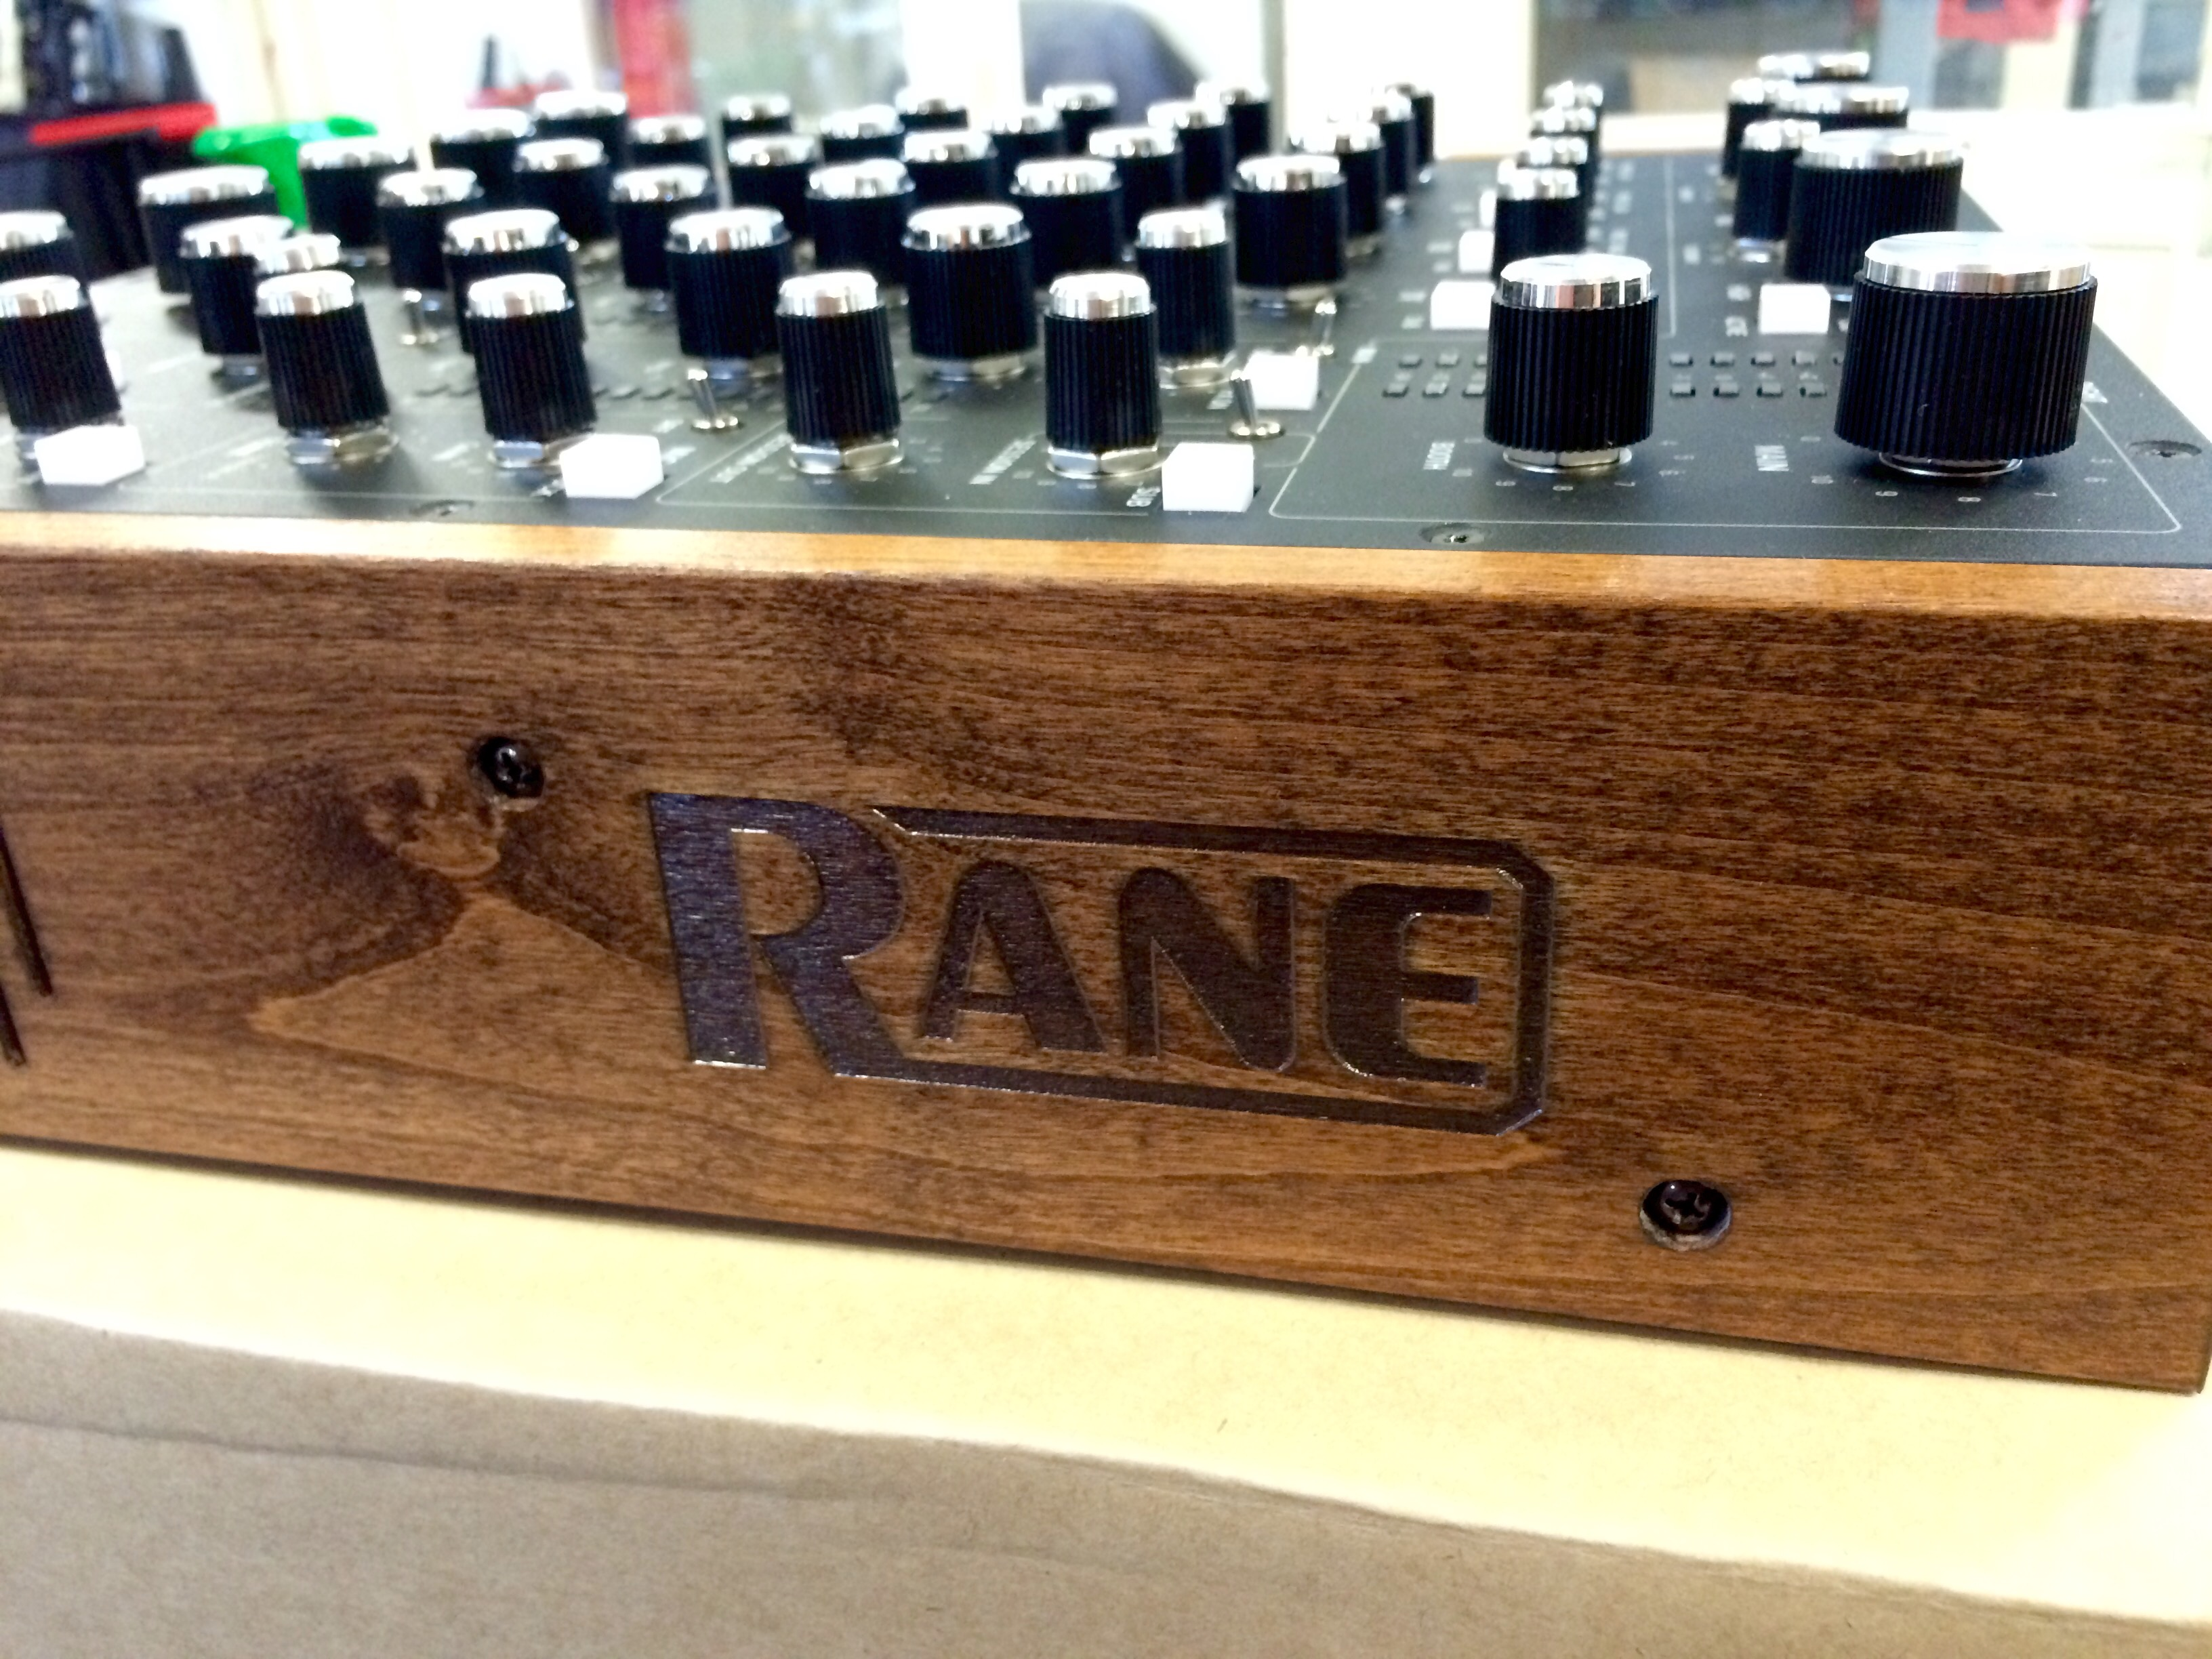 Neu in der Vermietung: RANE MP-2015